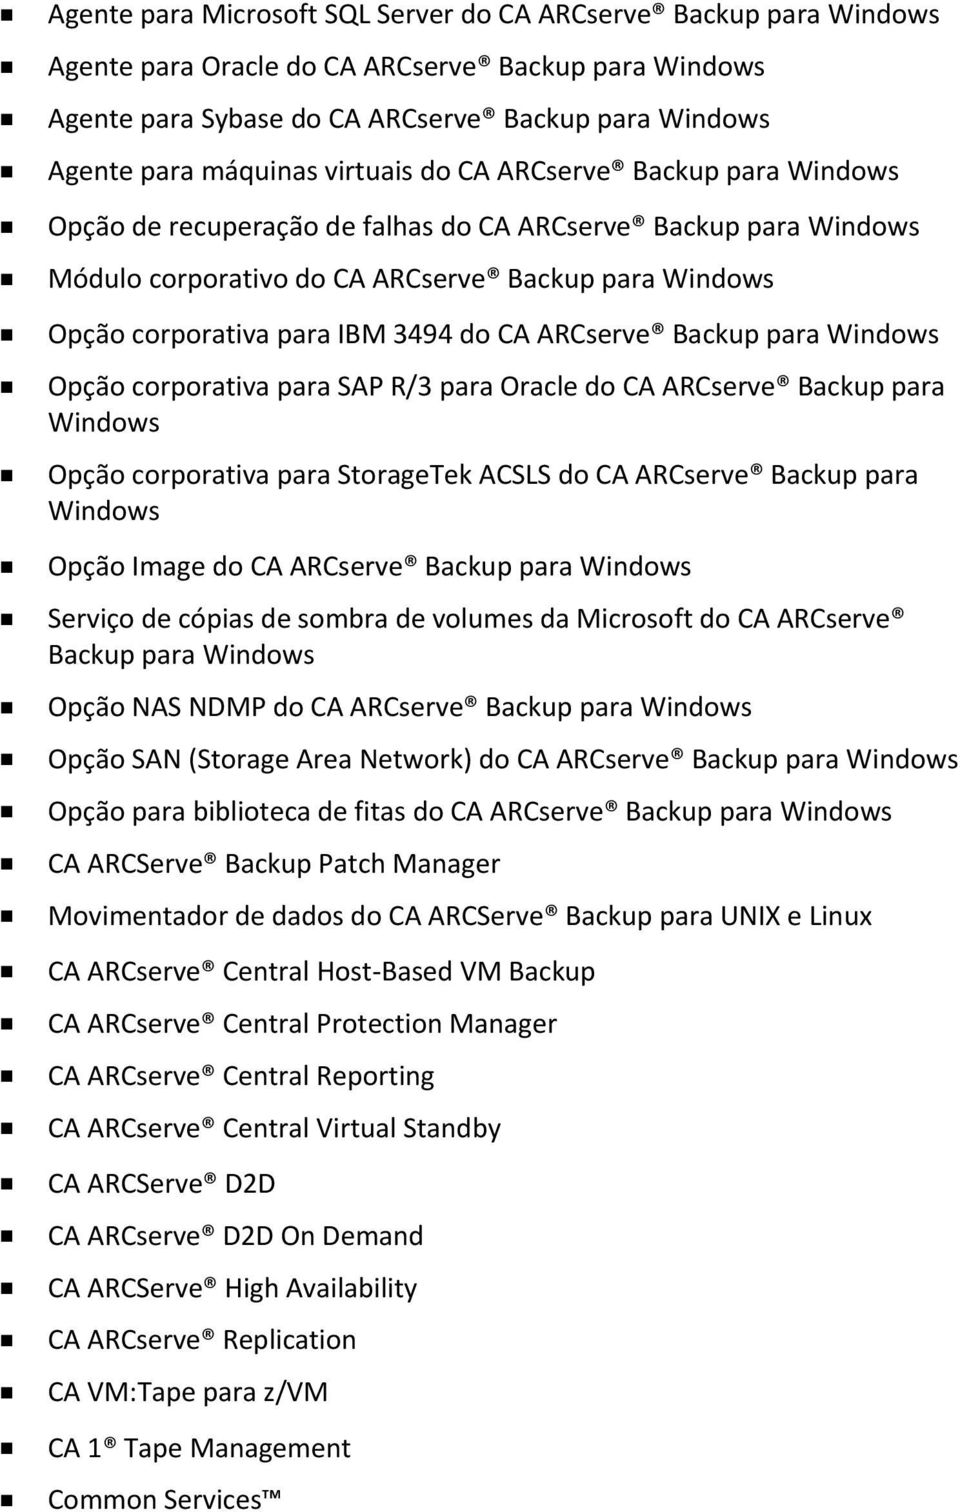 CA ARCserve Backup para Windows Opção corporativa para SAP R/3 para Oracle do CA ARCserve Backup para Windows Opção corporativa para StorageTek ACSLS do CA ARCserve Backup para Windows Opção Image do